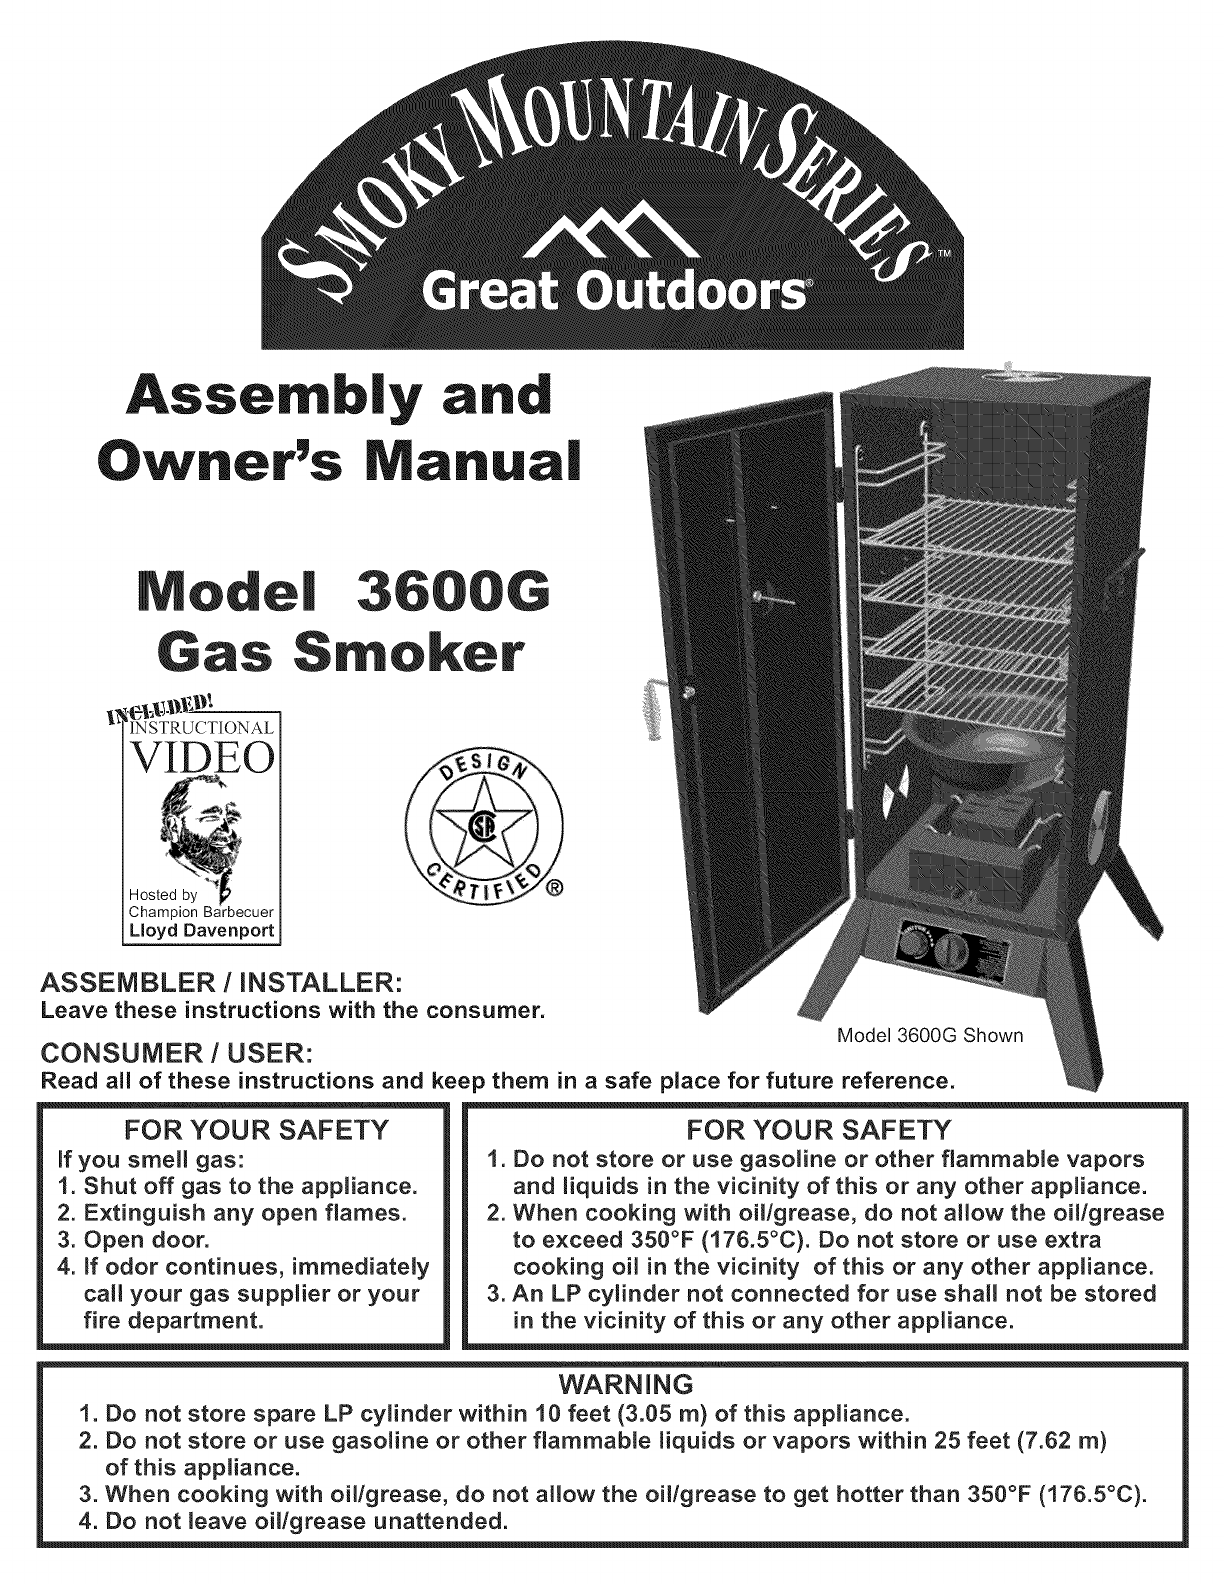 great outdoors smoker 3600g user guide manualsonline com rh outdoorcooking manualsonline com smoky mountain series smoker recipes smoky mountain series smoker recipes